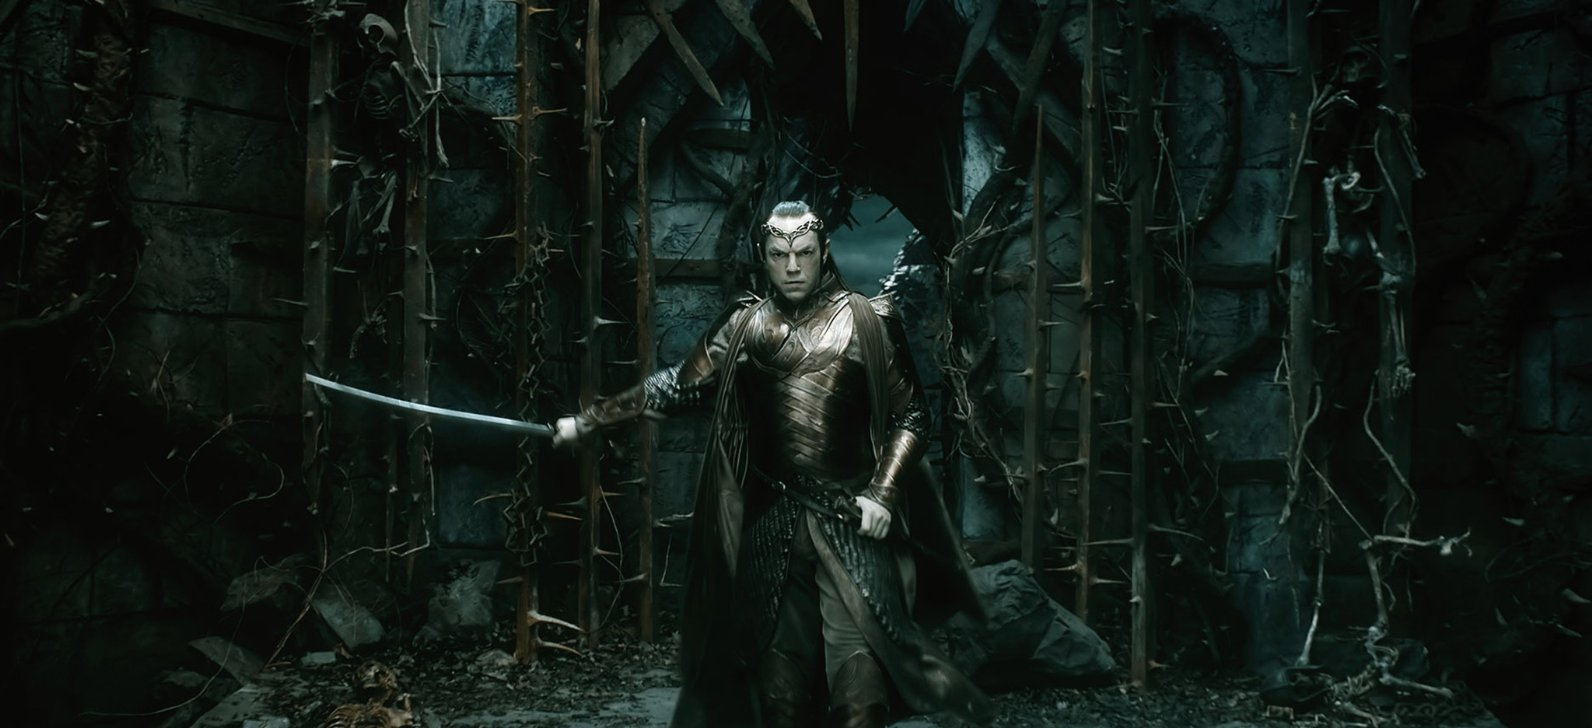 Battle Of The Five Armies Is A Soulless End To Flawed Hobbit